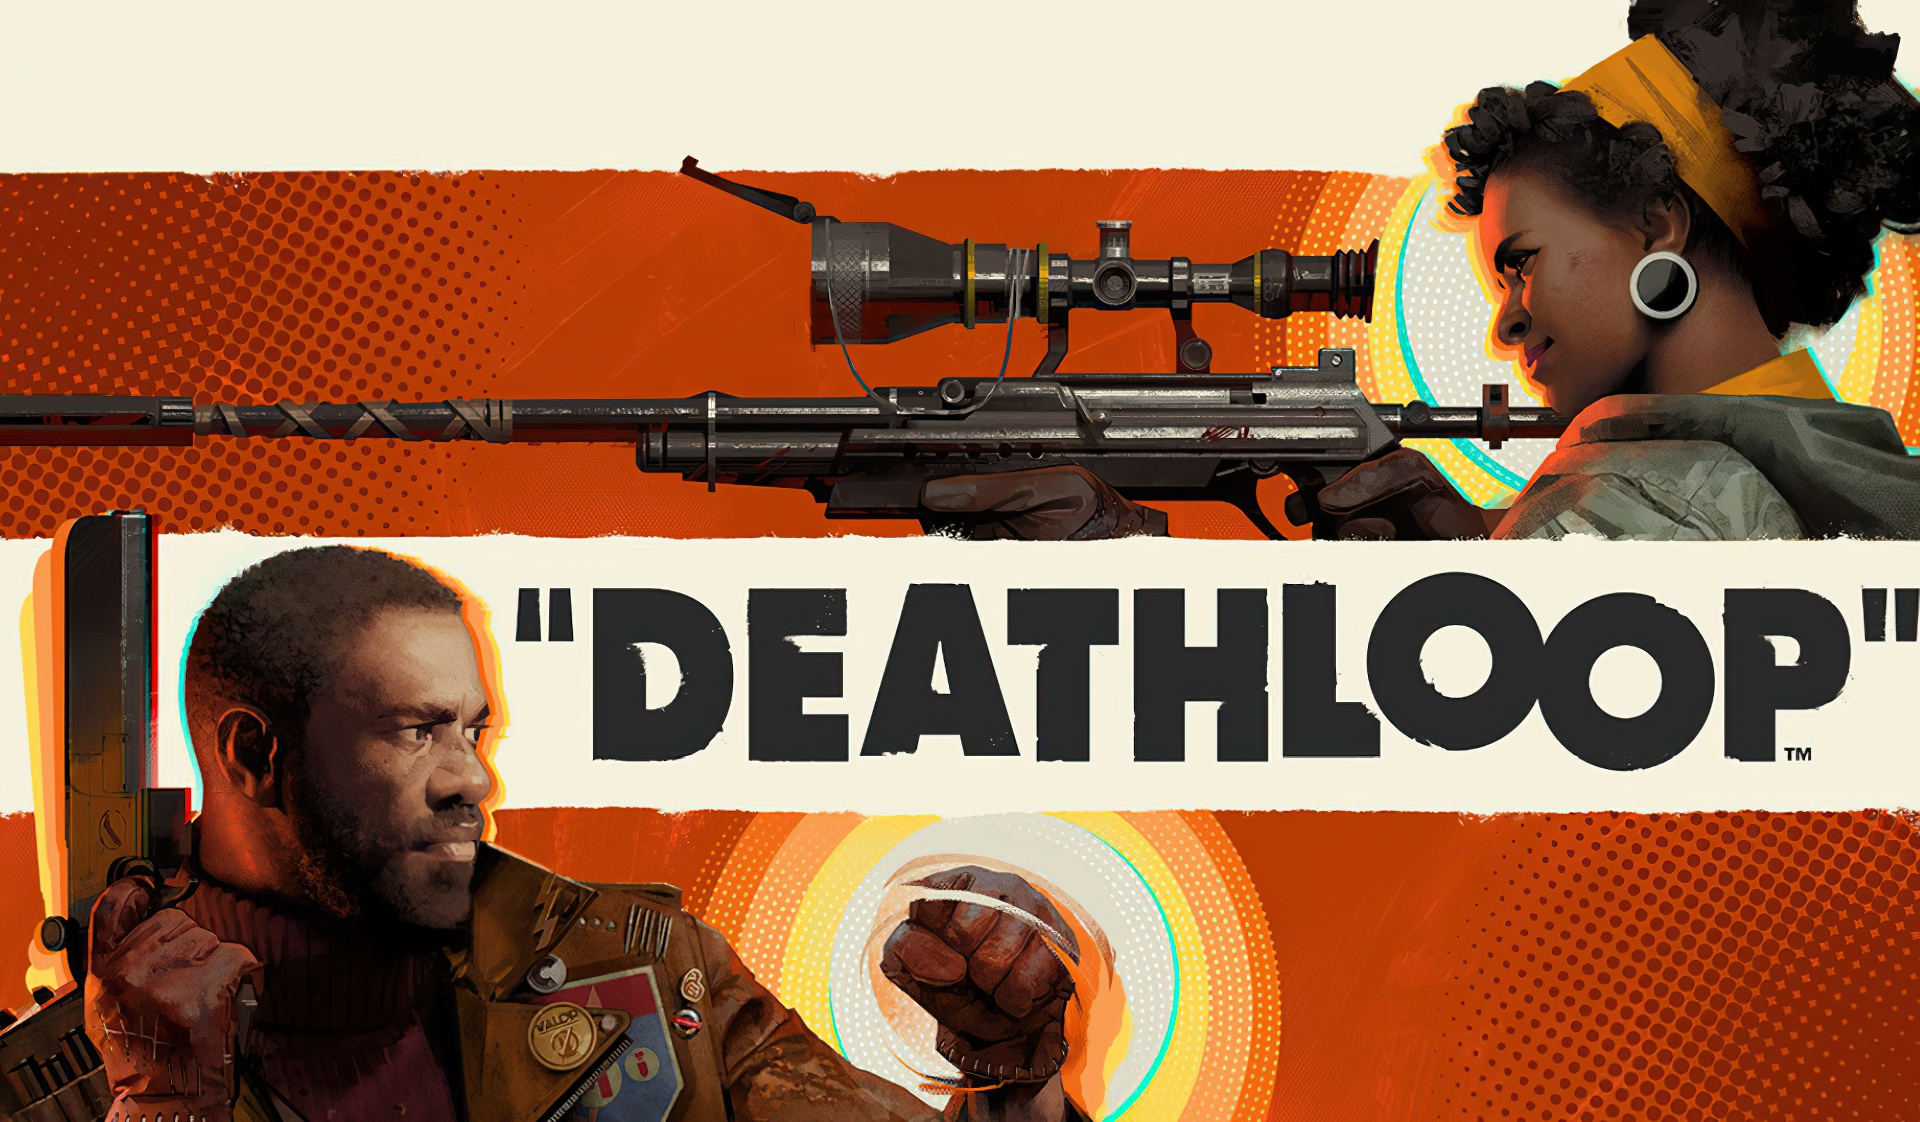 DEATHLOOP Available Now For Playstation 5 & PC